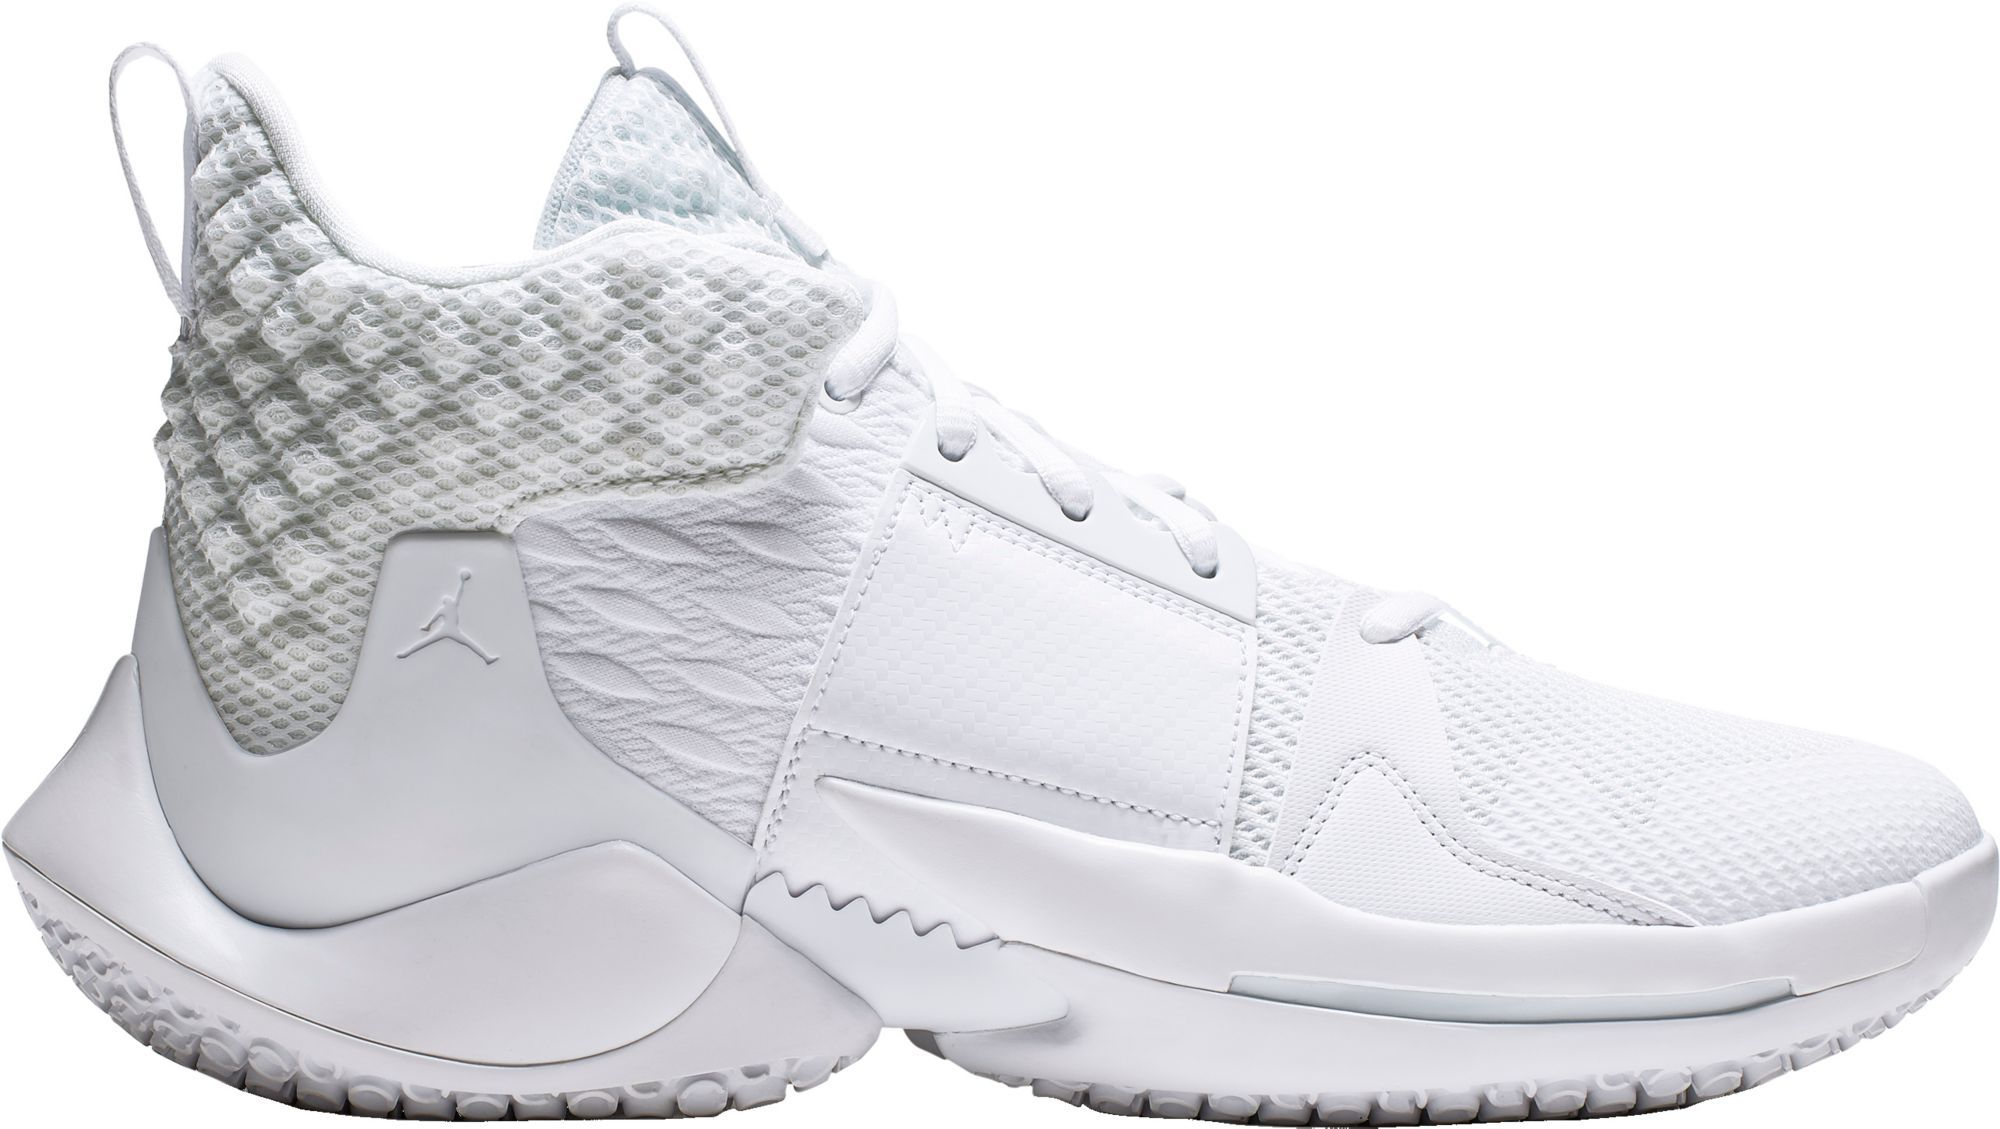 Jordan Why Not Zer0 2 Basketball Shoes In 2020 White Basketball Shoes Basketball Shoes Jordans